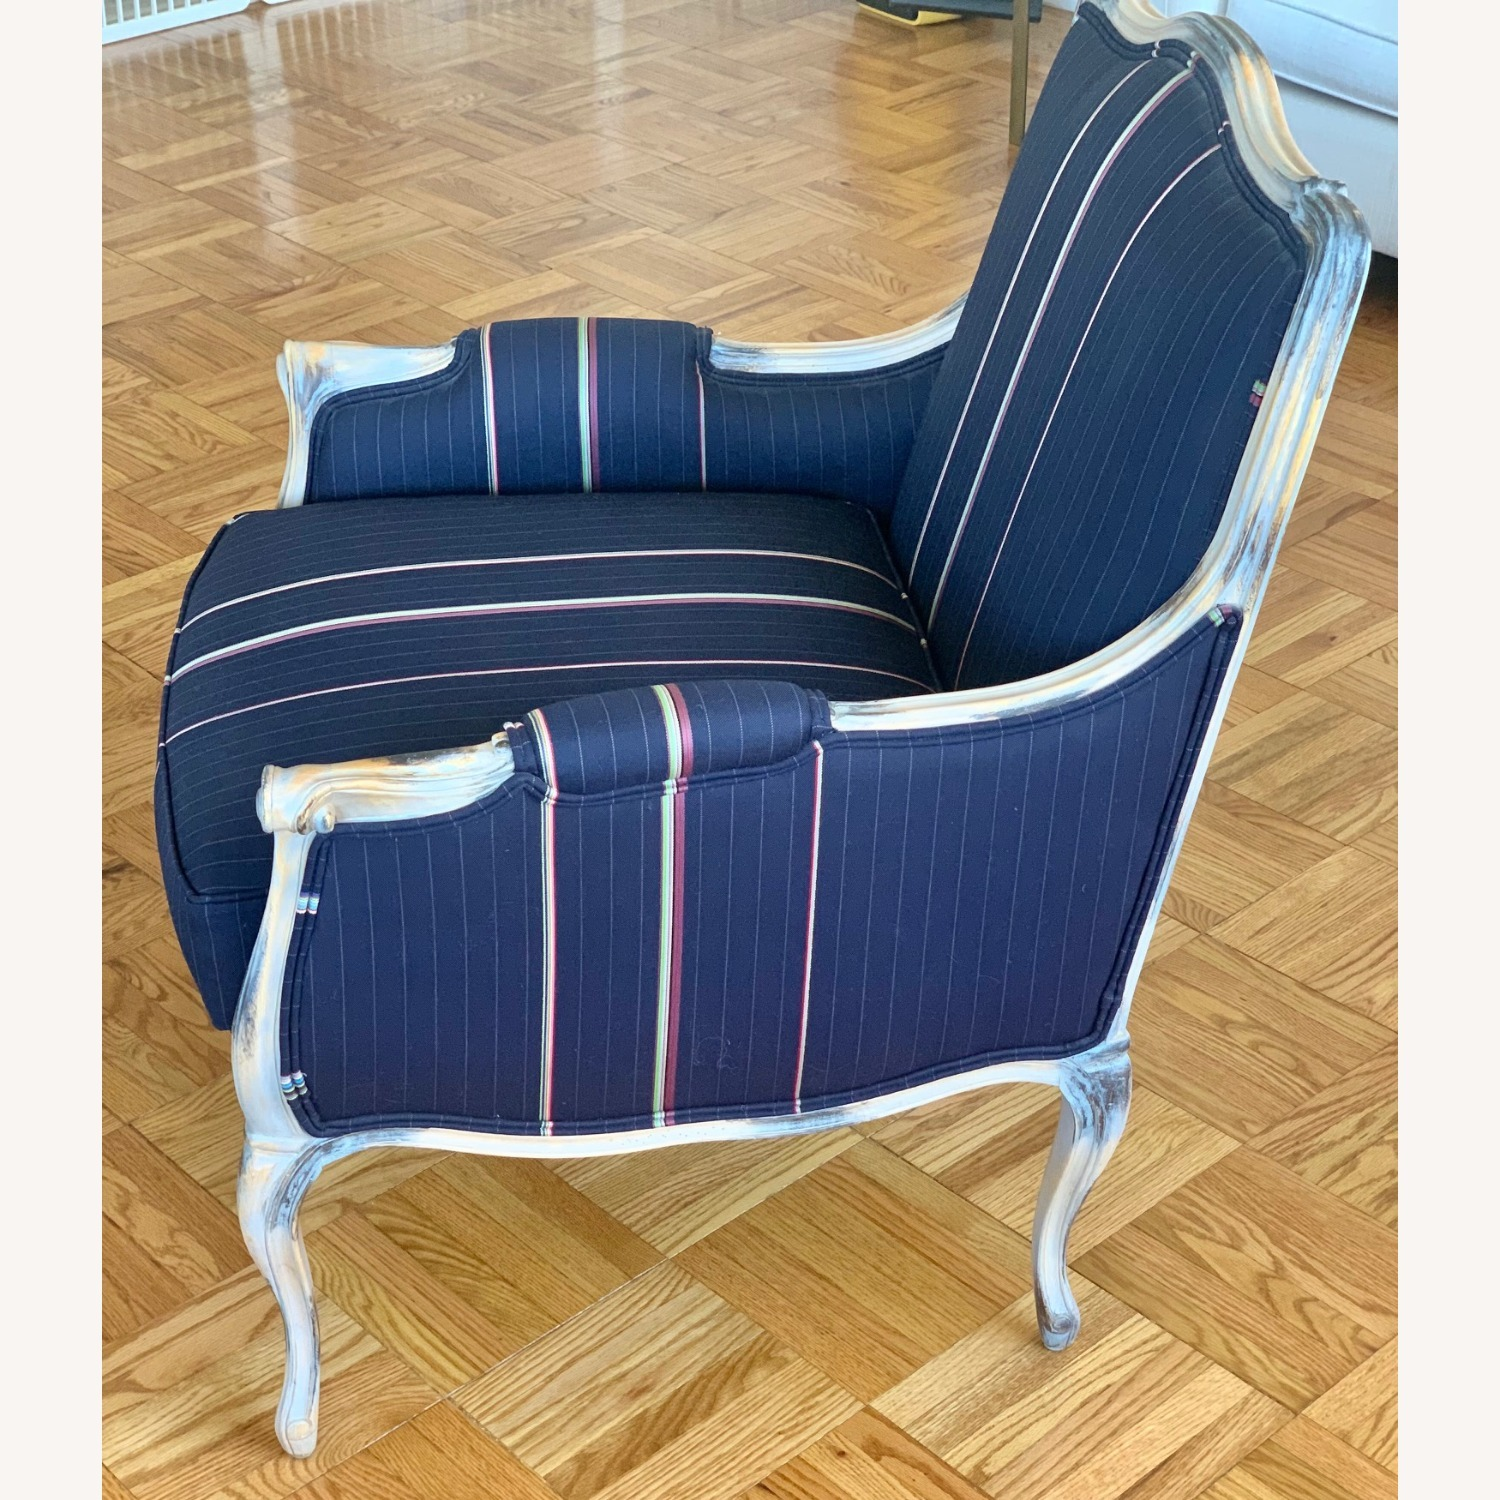 Anthropologie Paul Smith Collection Armchair - image-2